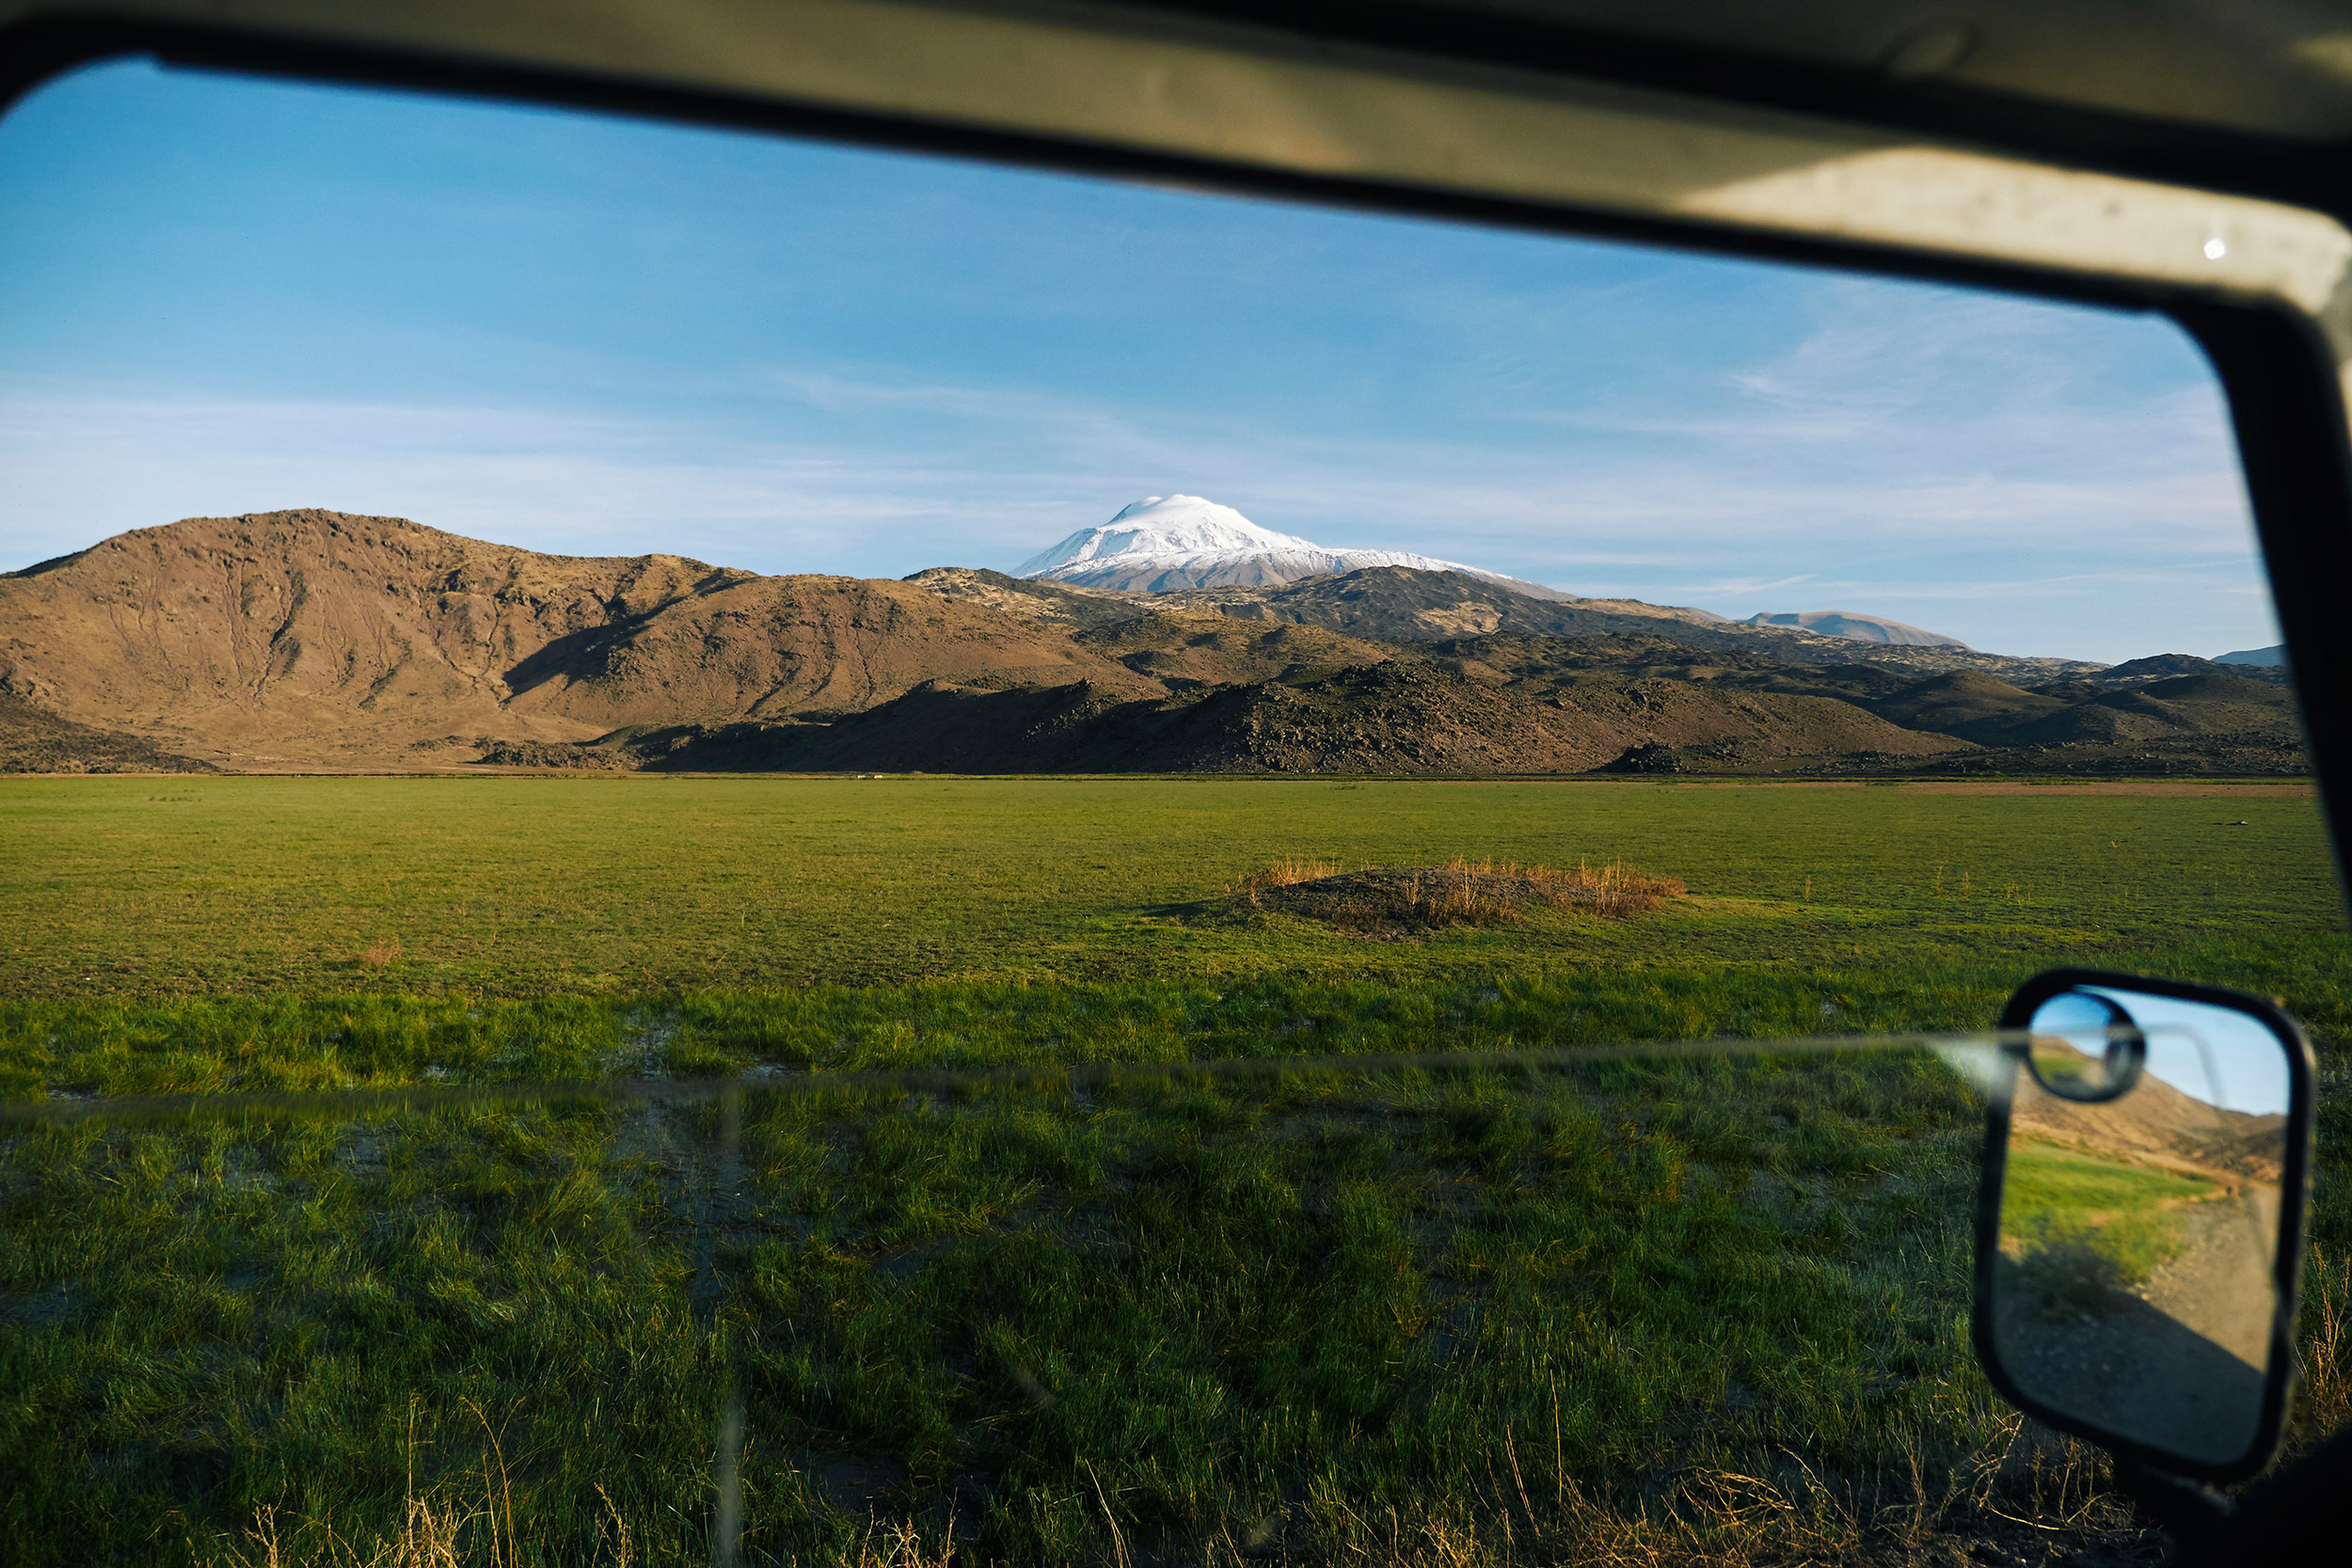 View of mount Ararat from the window